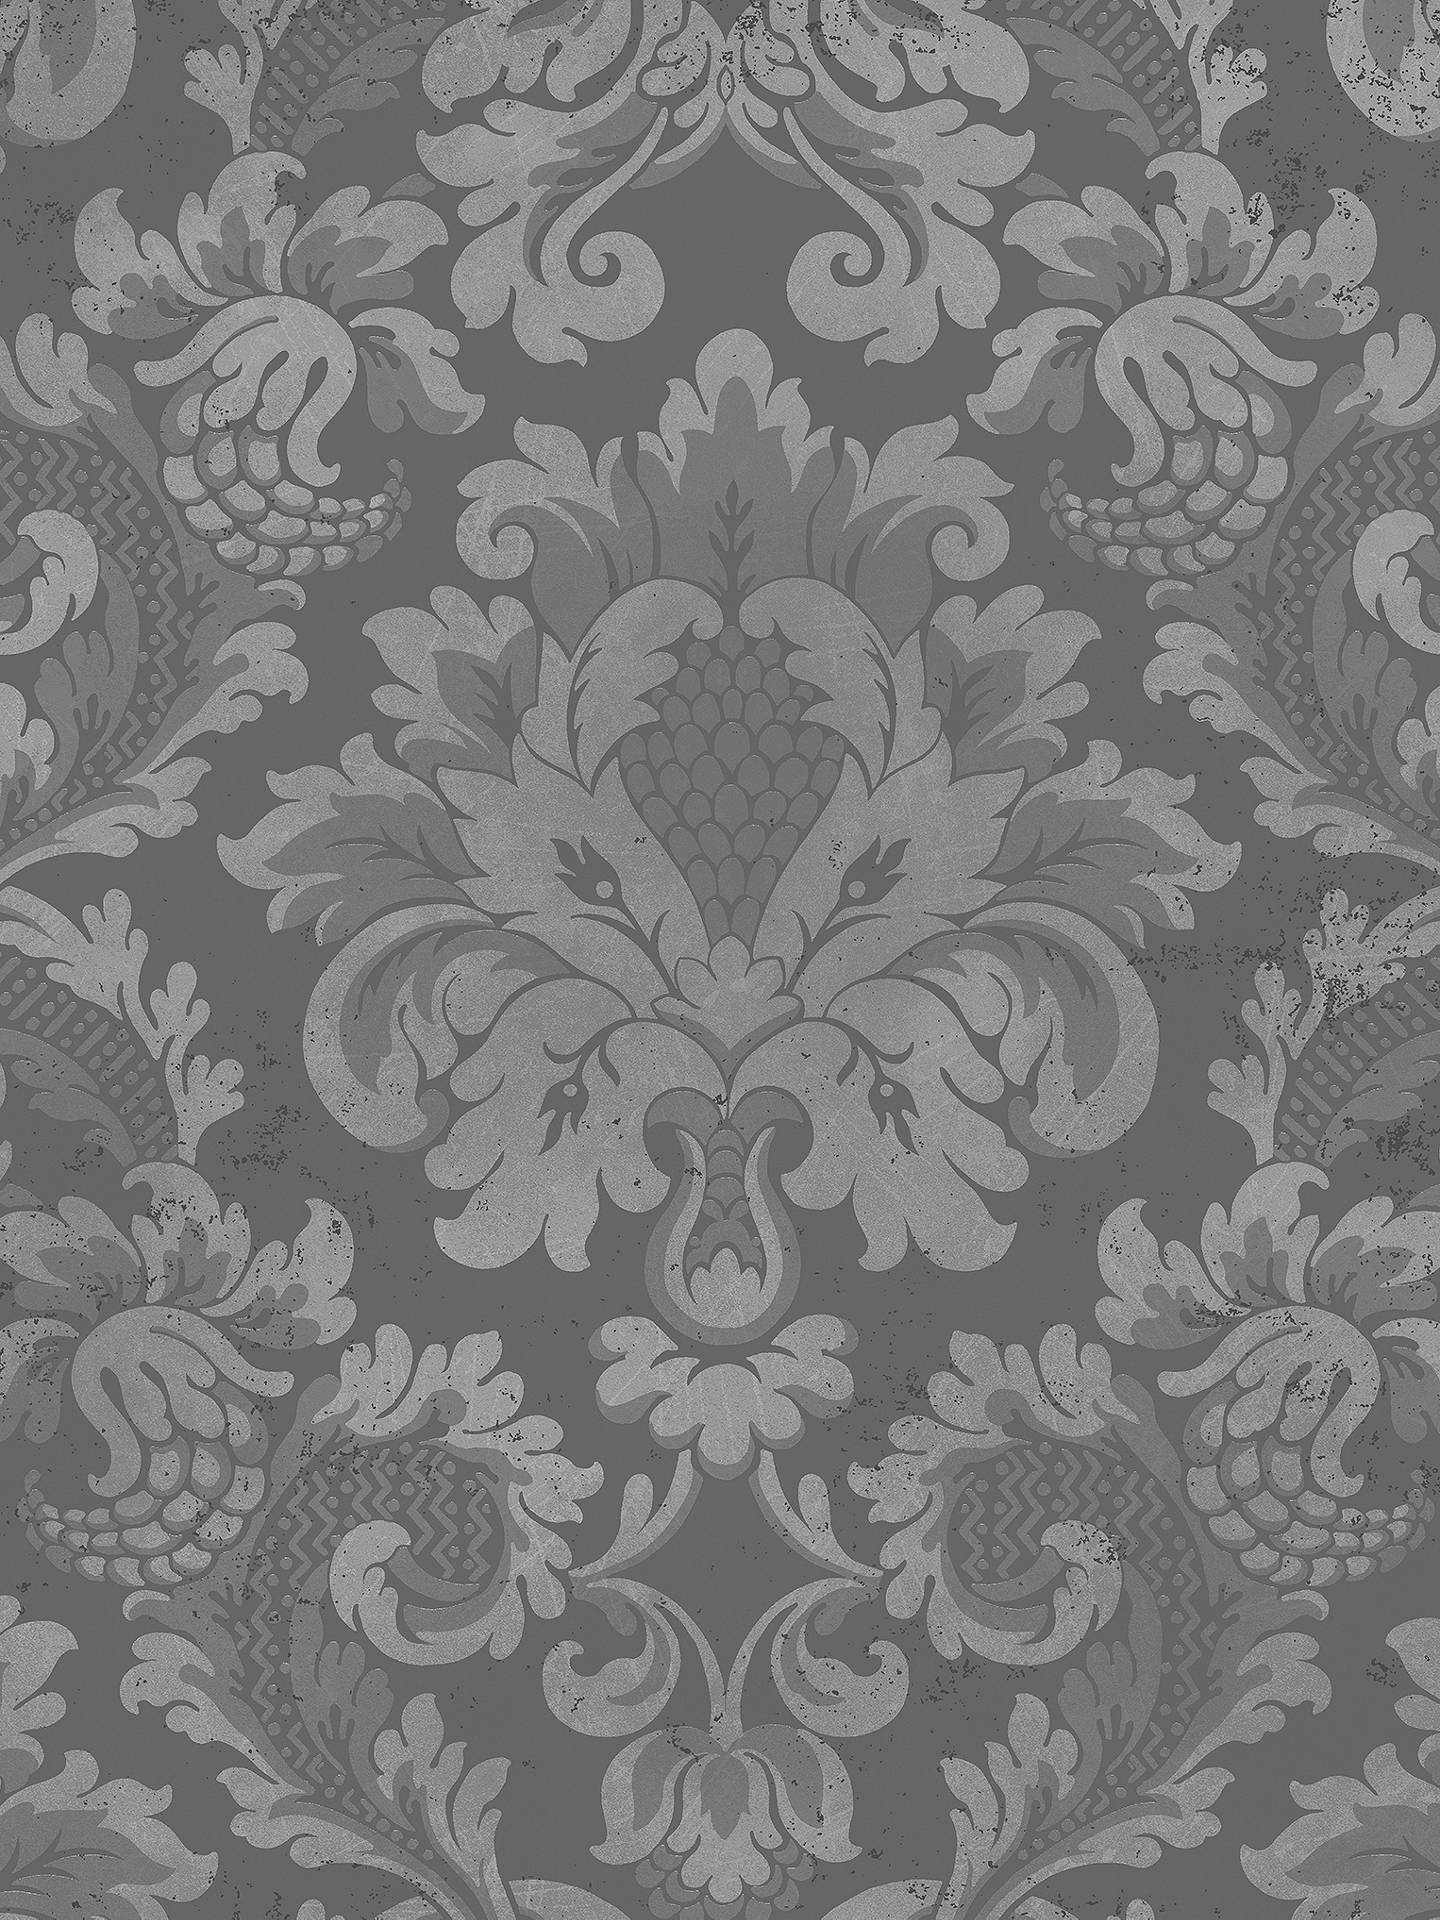 Buy Cole & Son Mariinsky Stravinsky Paste the Wall Wallpaper, Silver 108/4018 Online at johnlewis.com